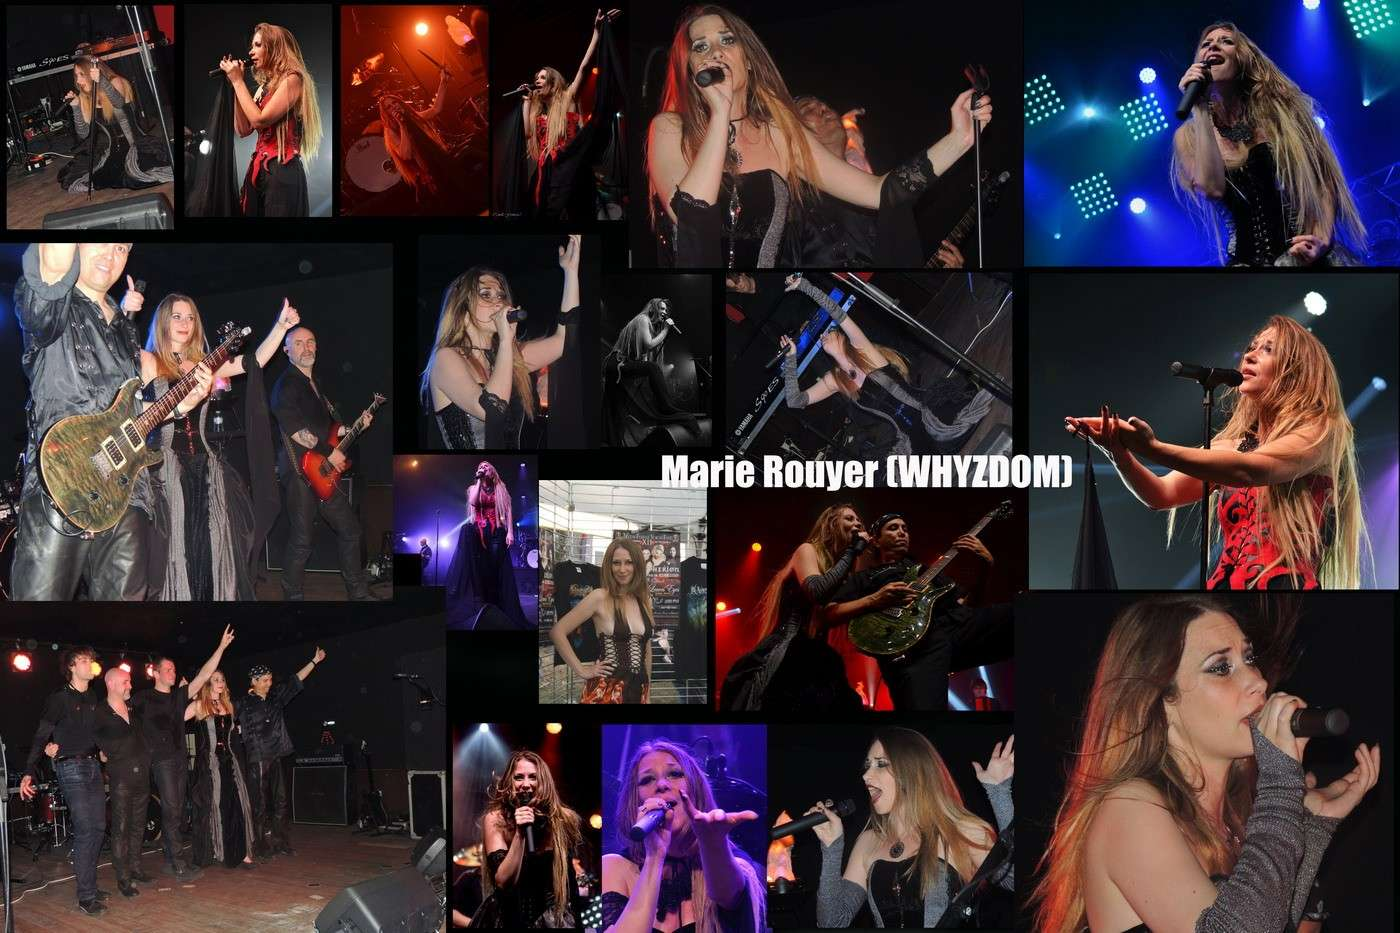 Mes petits montages photos ... - Page 5 Marie_10